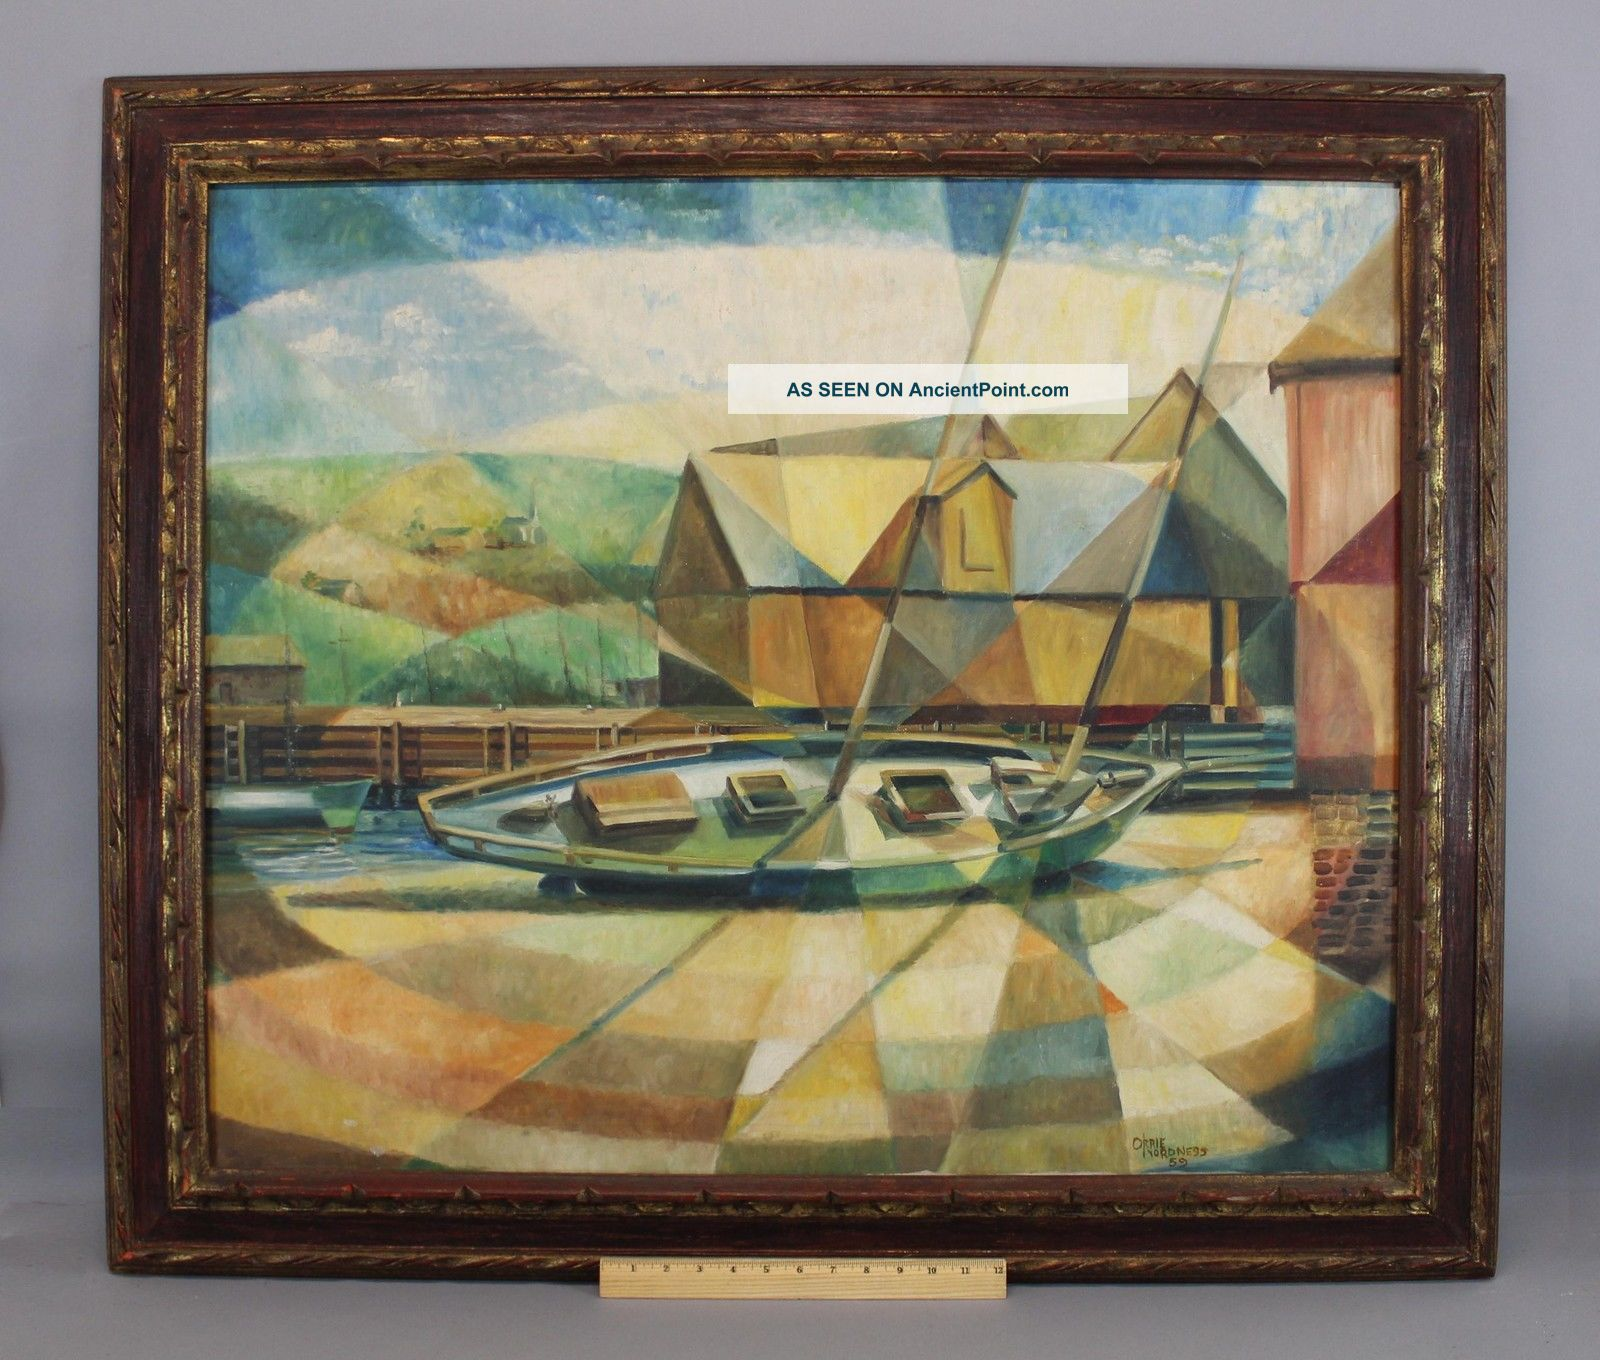 1959 Vintage Mid - Century Modernist Orrie Nordness Sailboat Painting Cubist Style Other Maritime Antiques photo